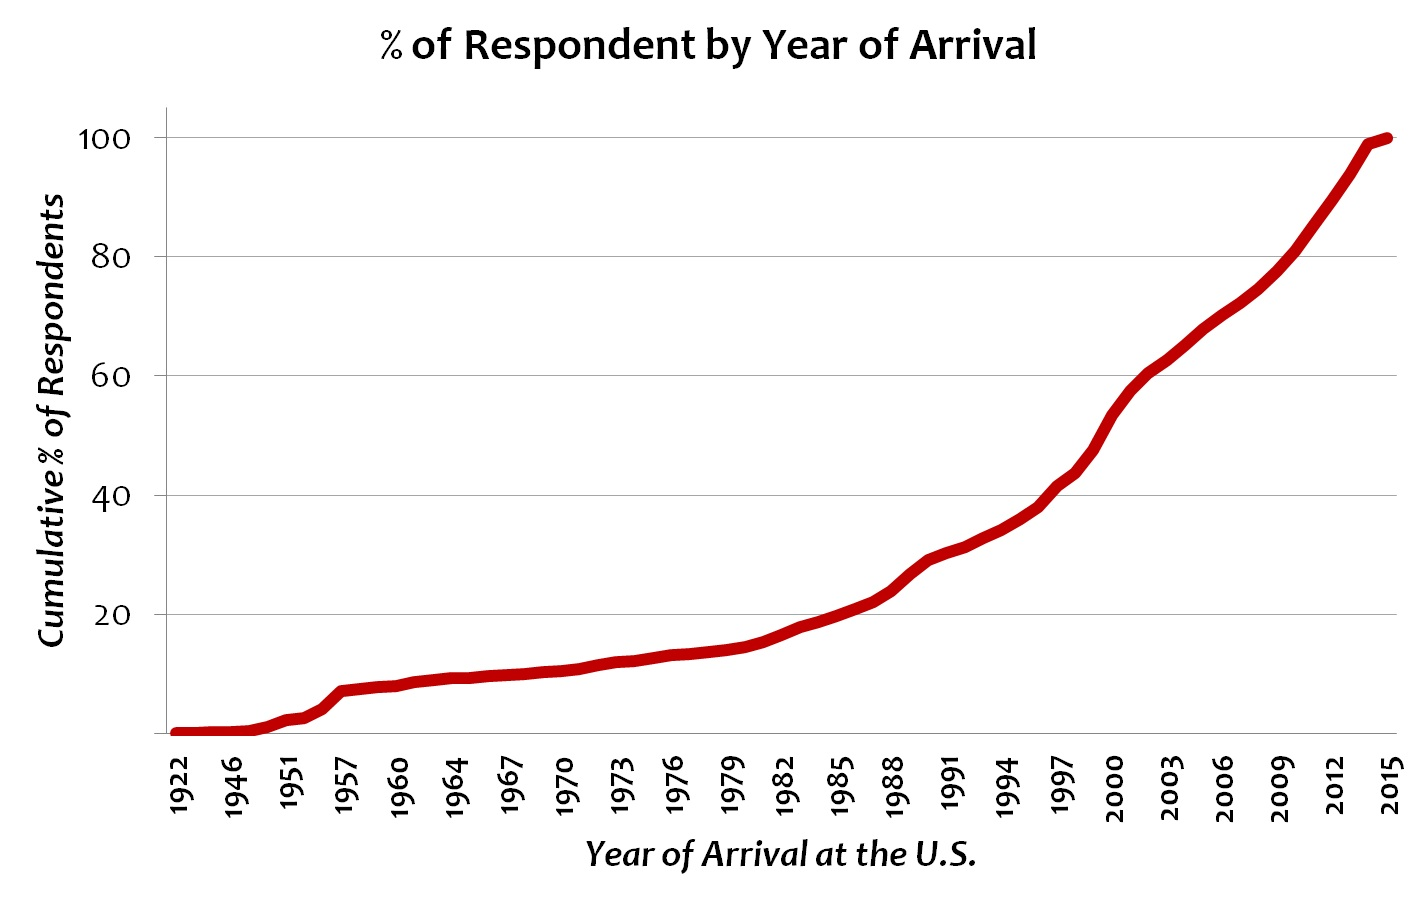 respondents_by_year_of_arrival.jpg